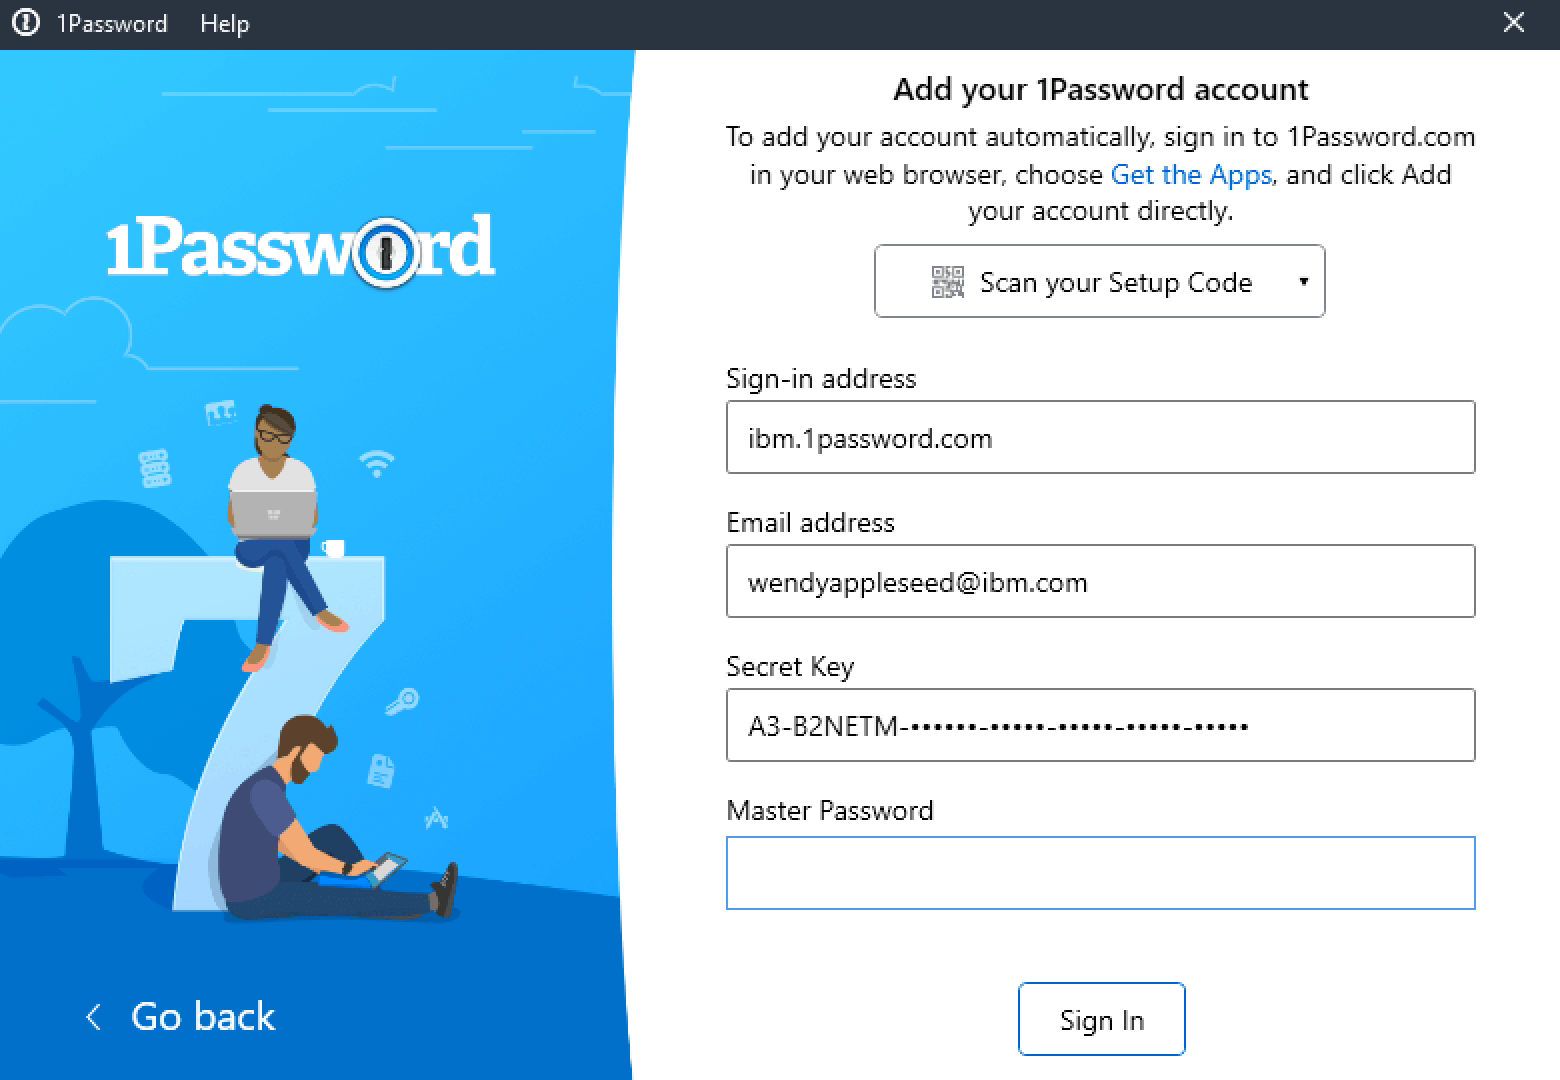 Your account details - enter your Master Password to sign in